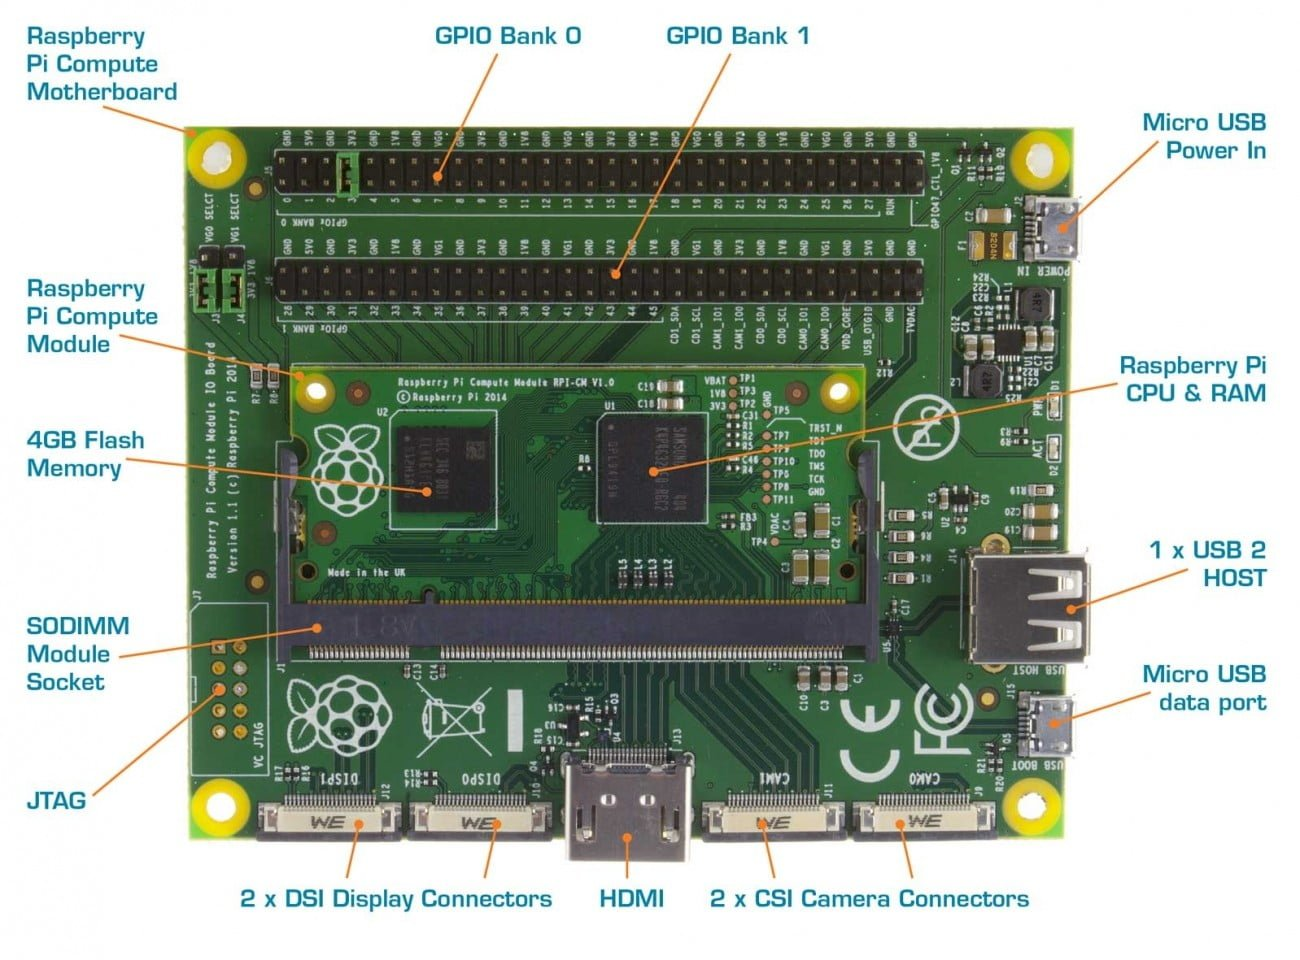 The-new-raspberry-pi-hardware-board-introductions